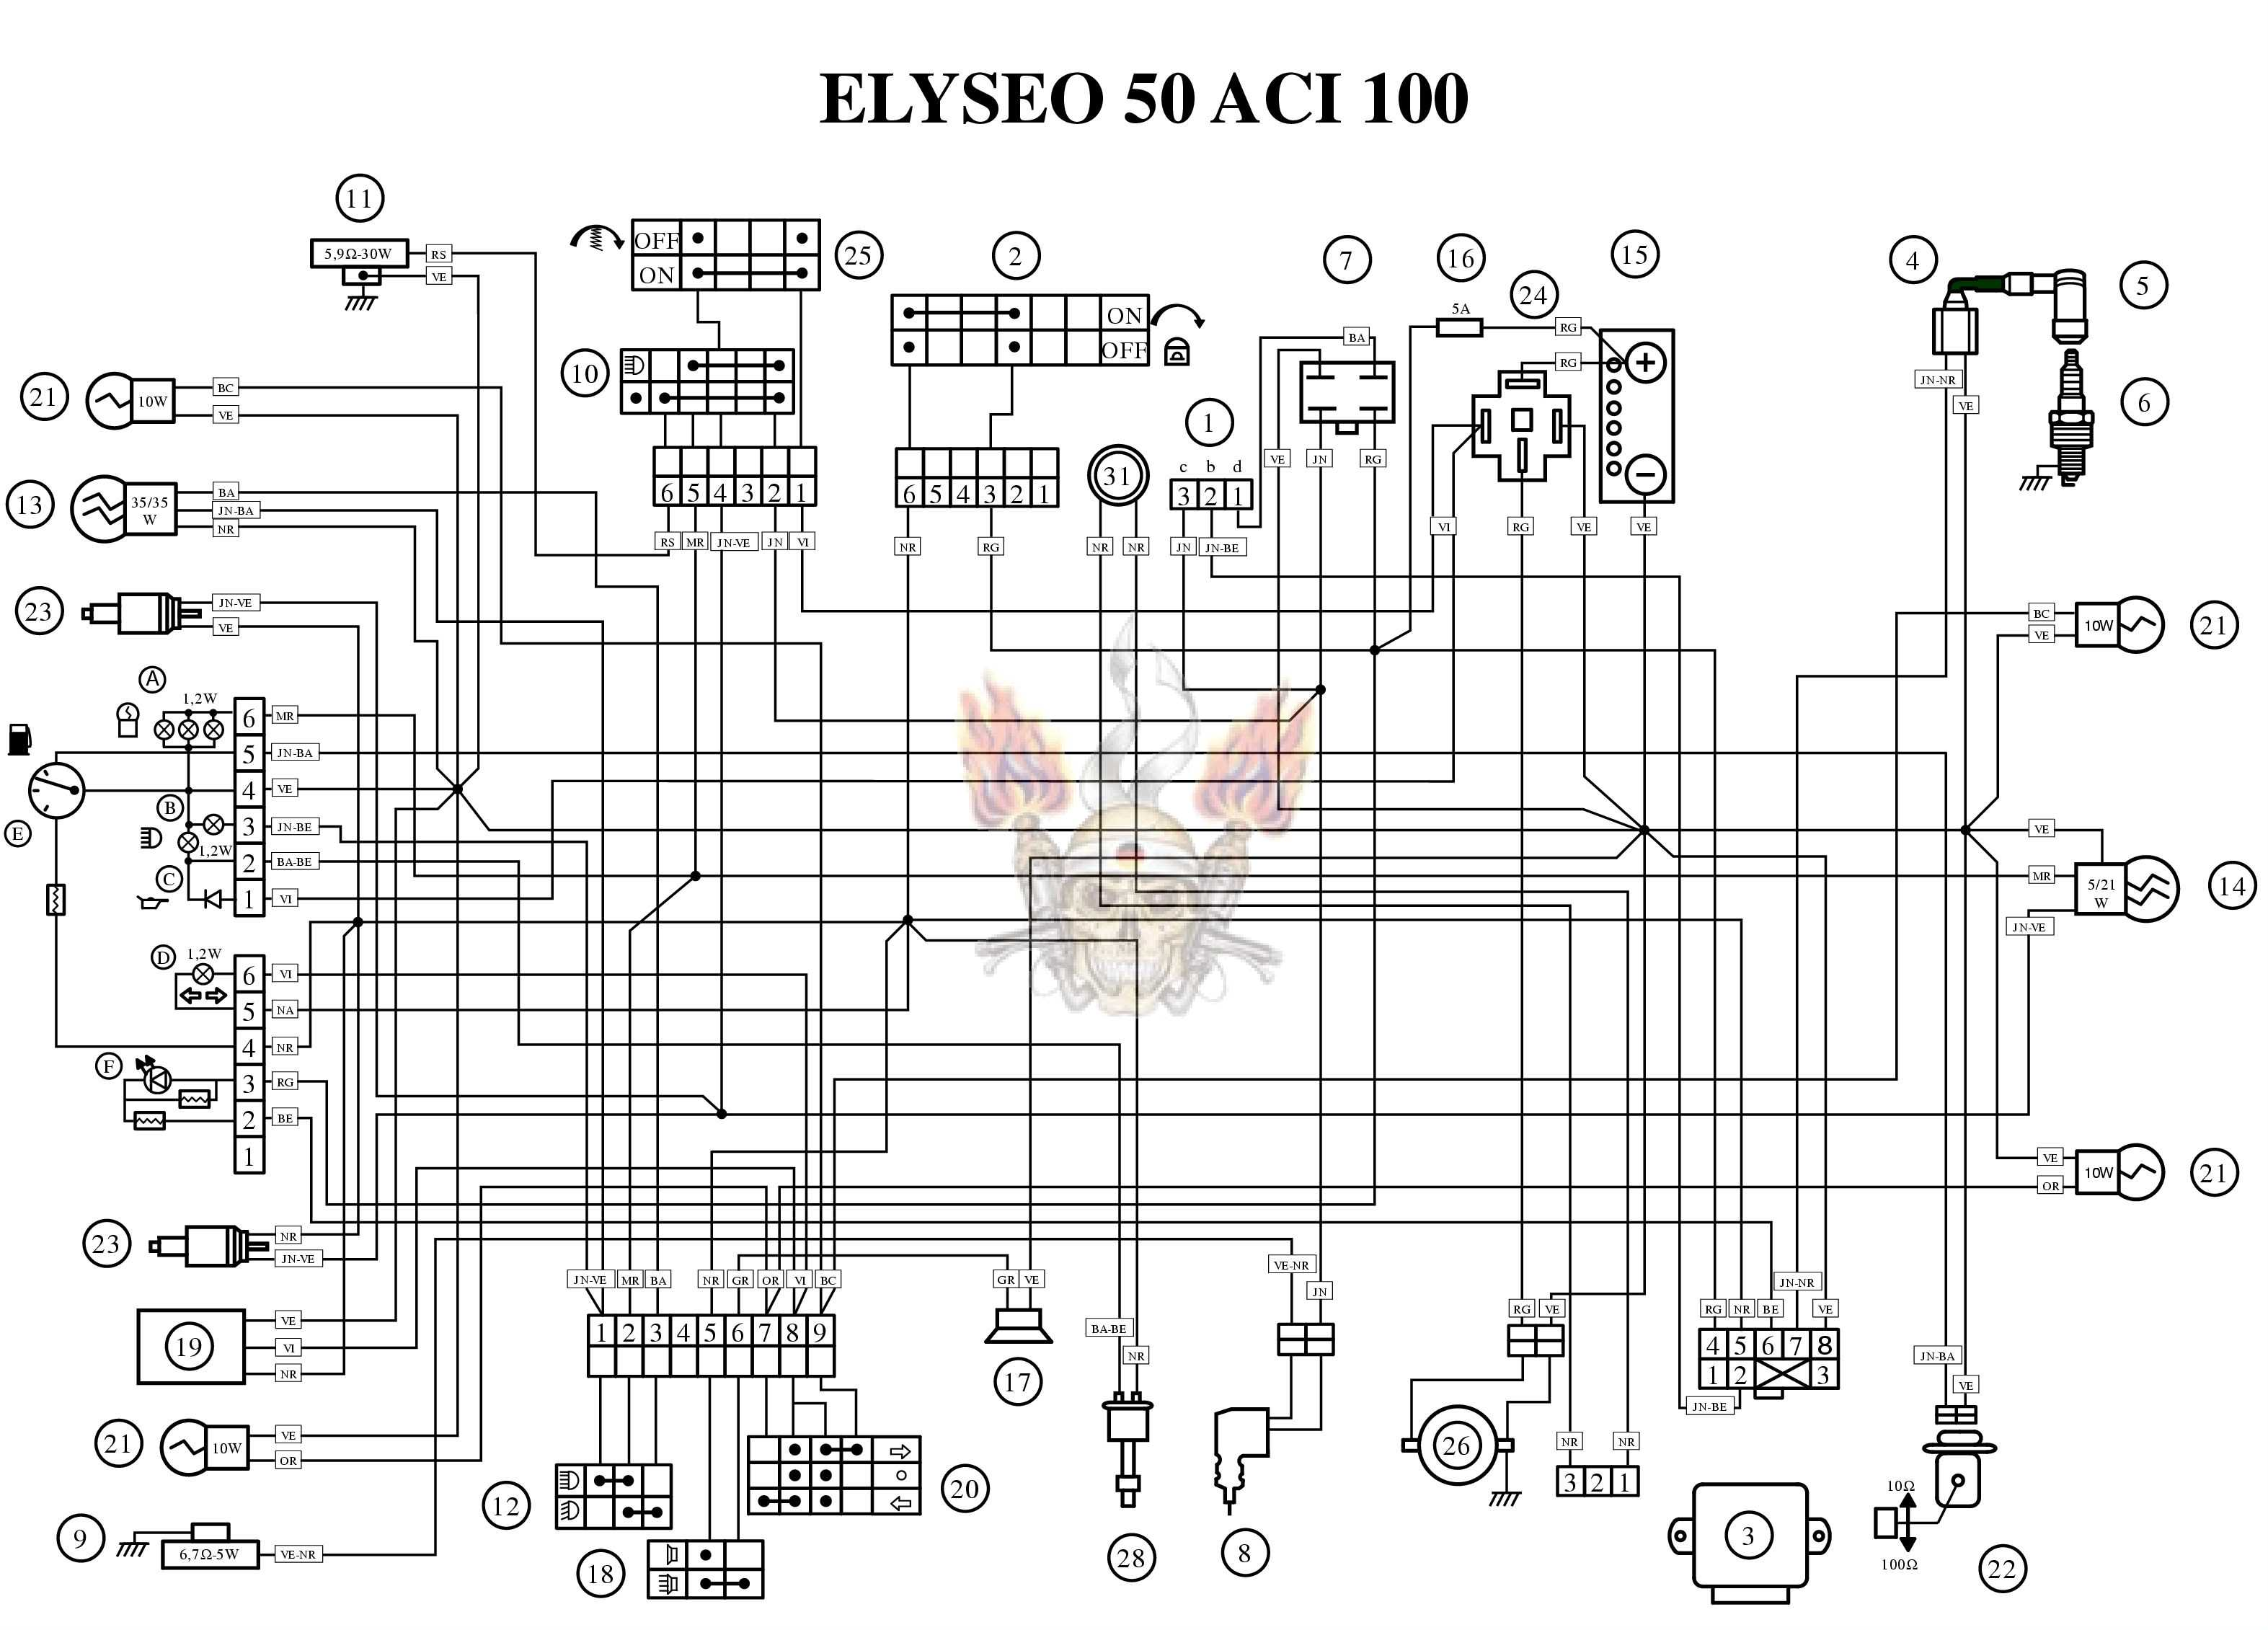 Wiring Diagram Peugeot ELYSEO 50 ACI 100?t\\\\\\=1485078190 peugeot 308 wiring diagram download wiring diagram and schematic c90 wiring diagram at highcare.asia